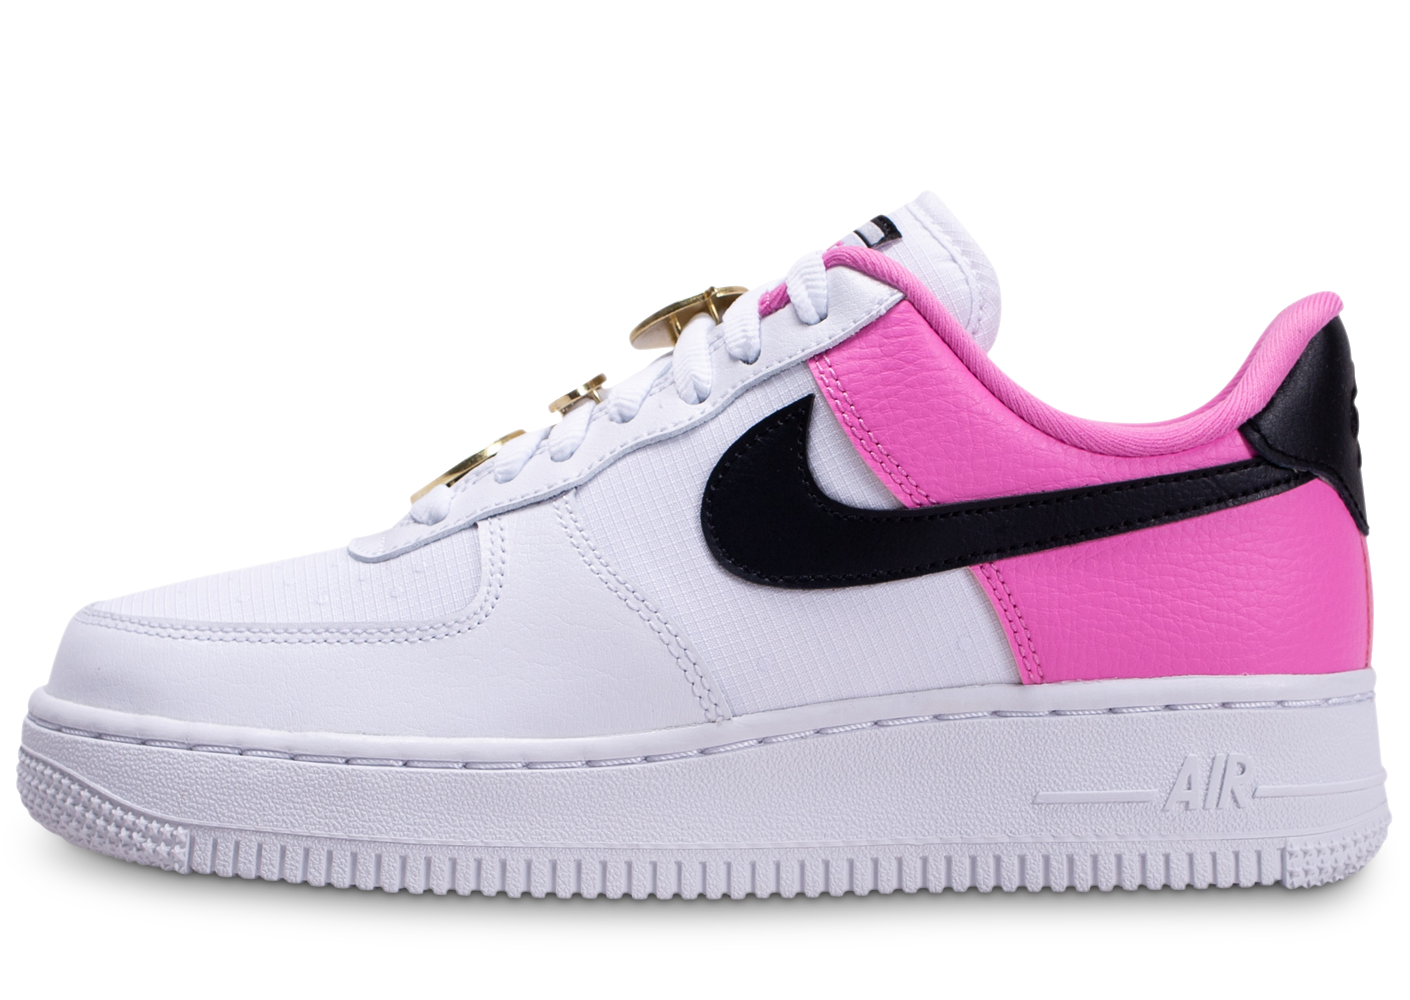 Nike air force 1'07 blanc rose femme baskets